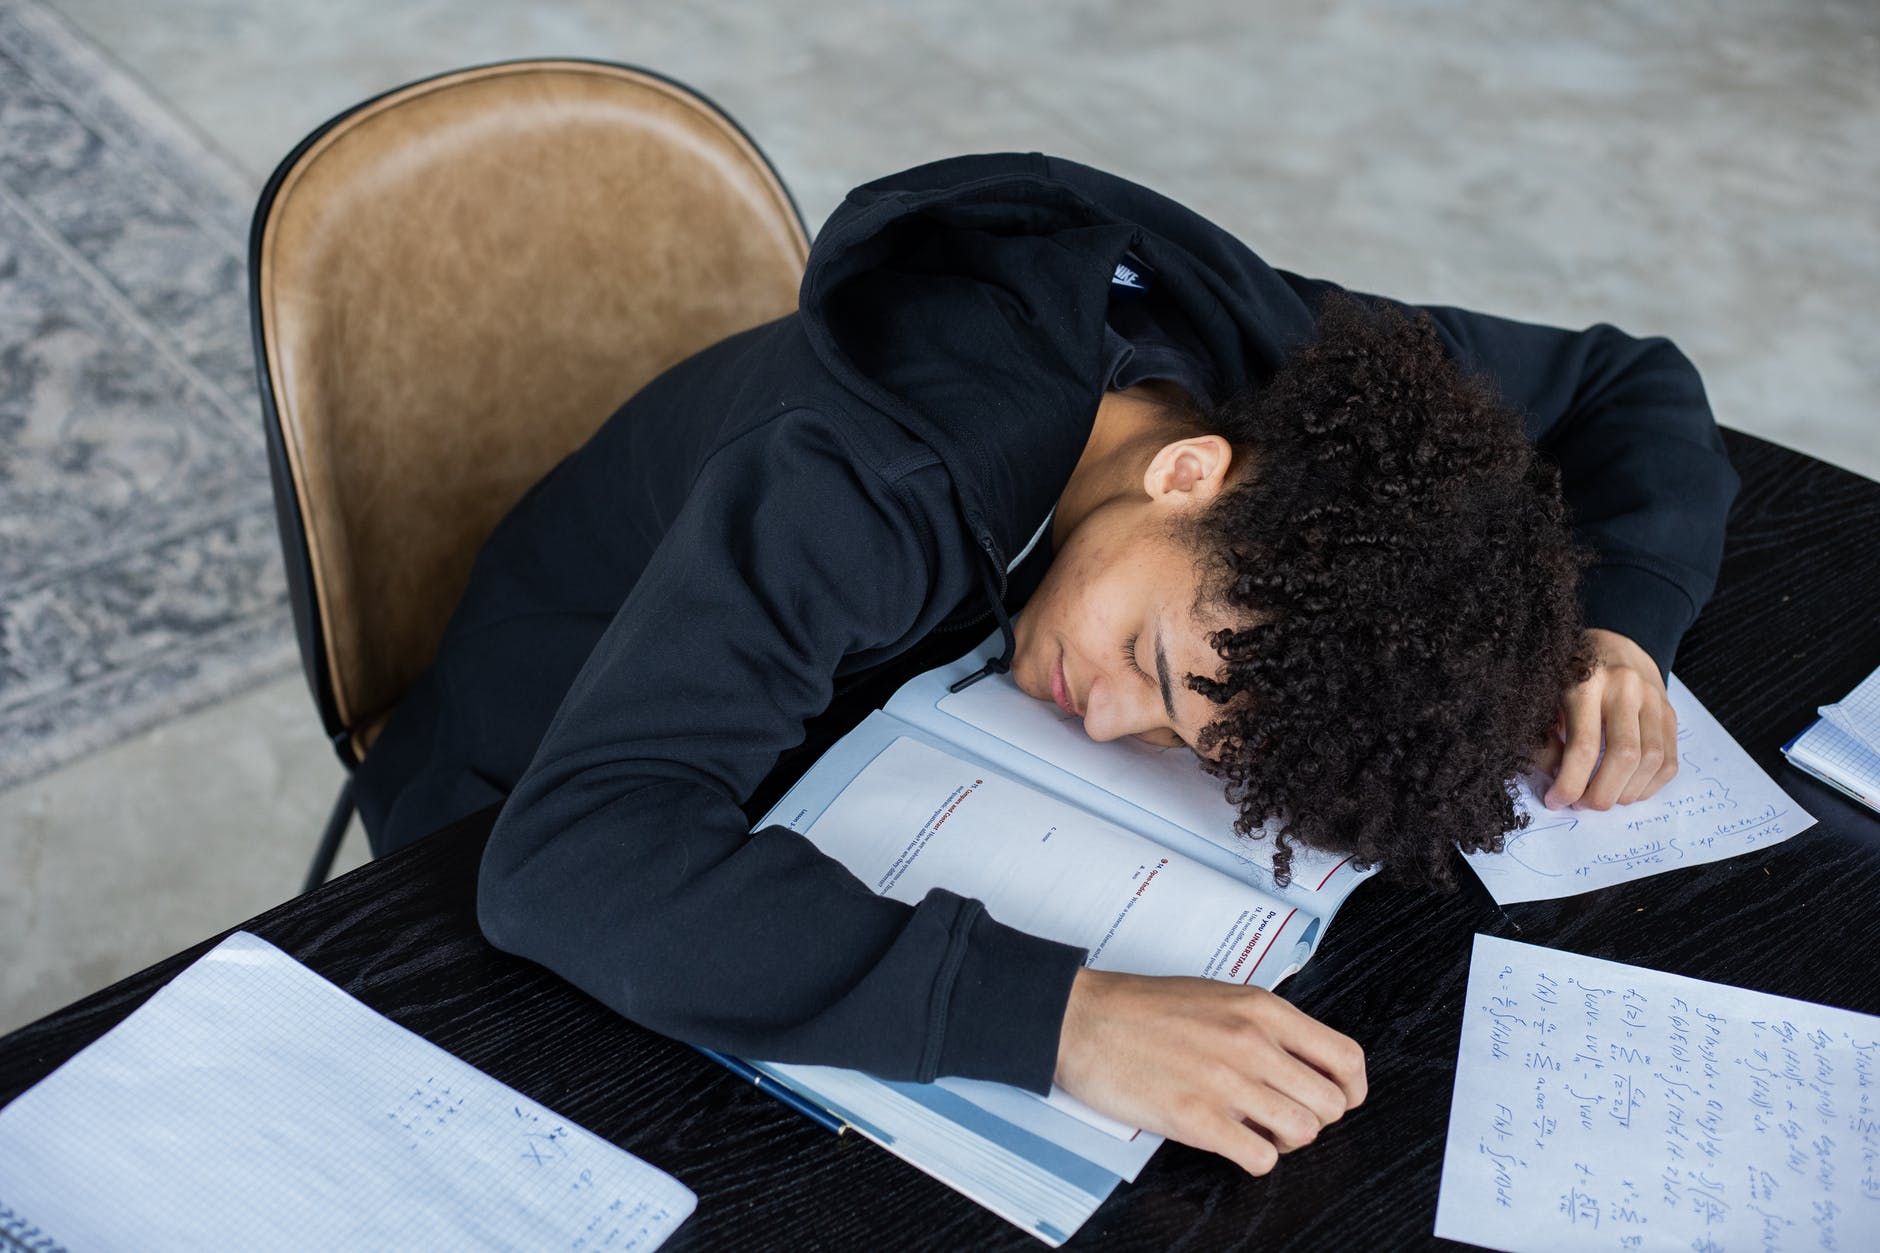 Exhausted college athlete doing school work.